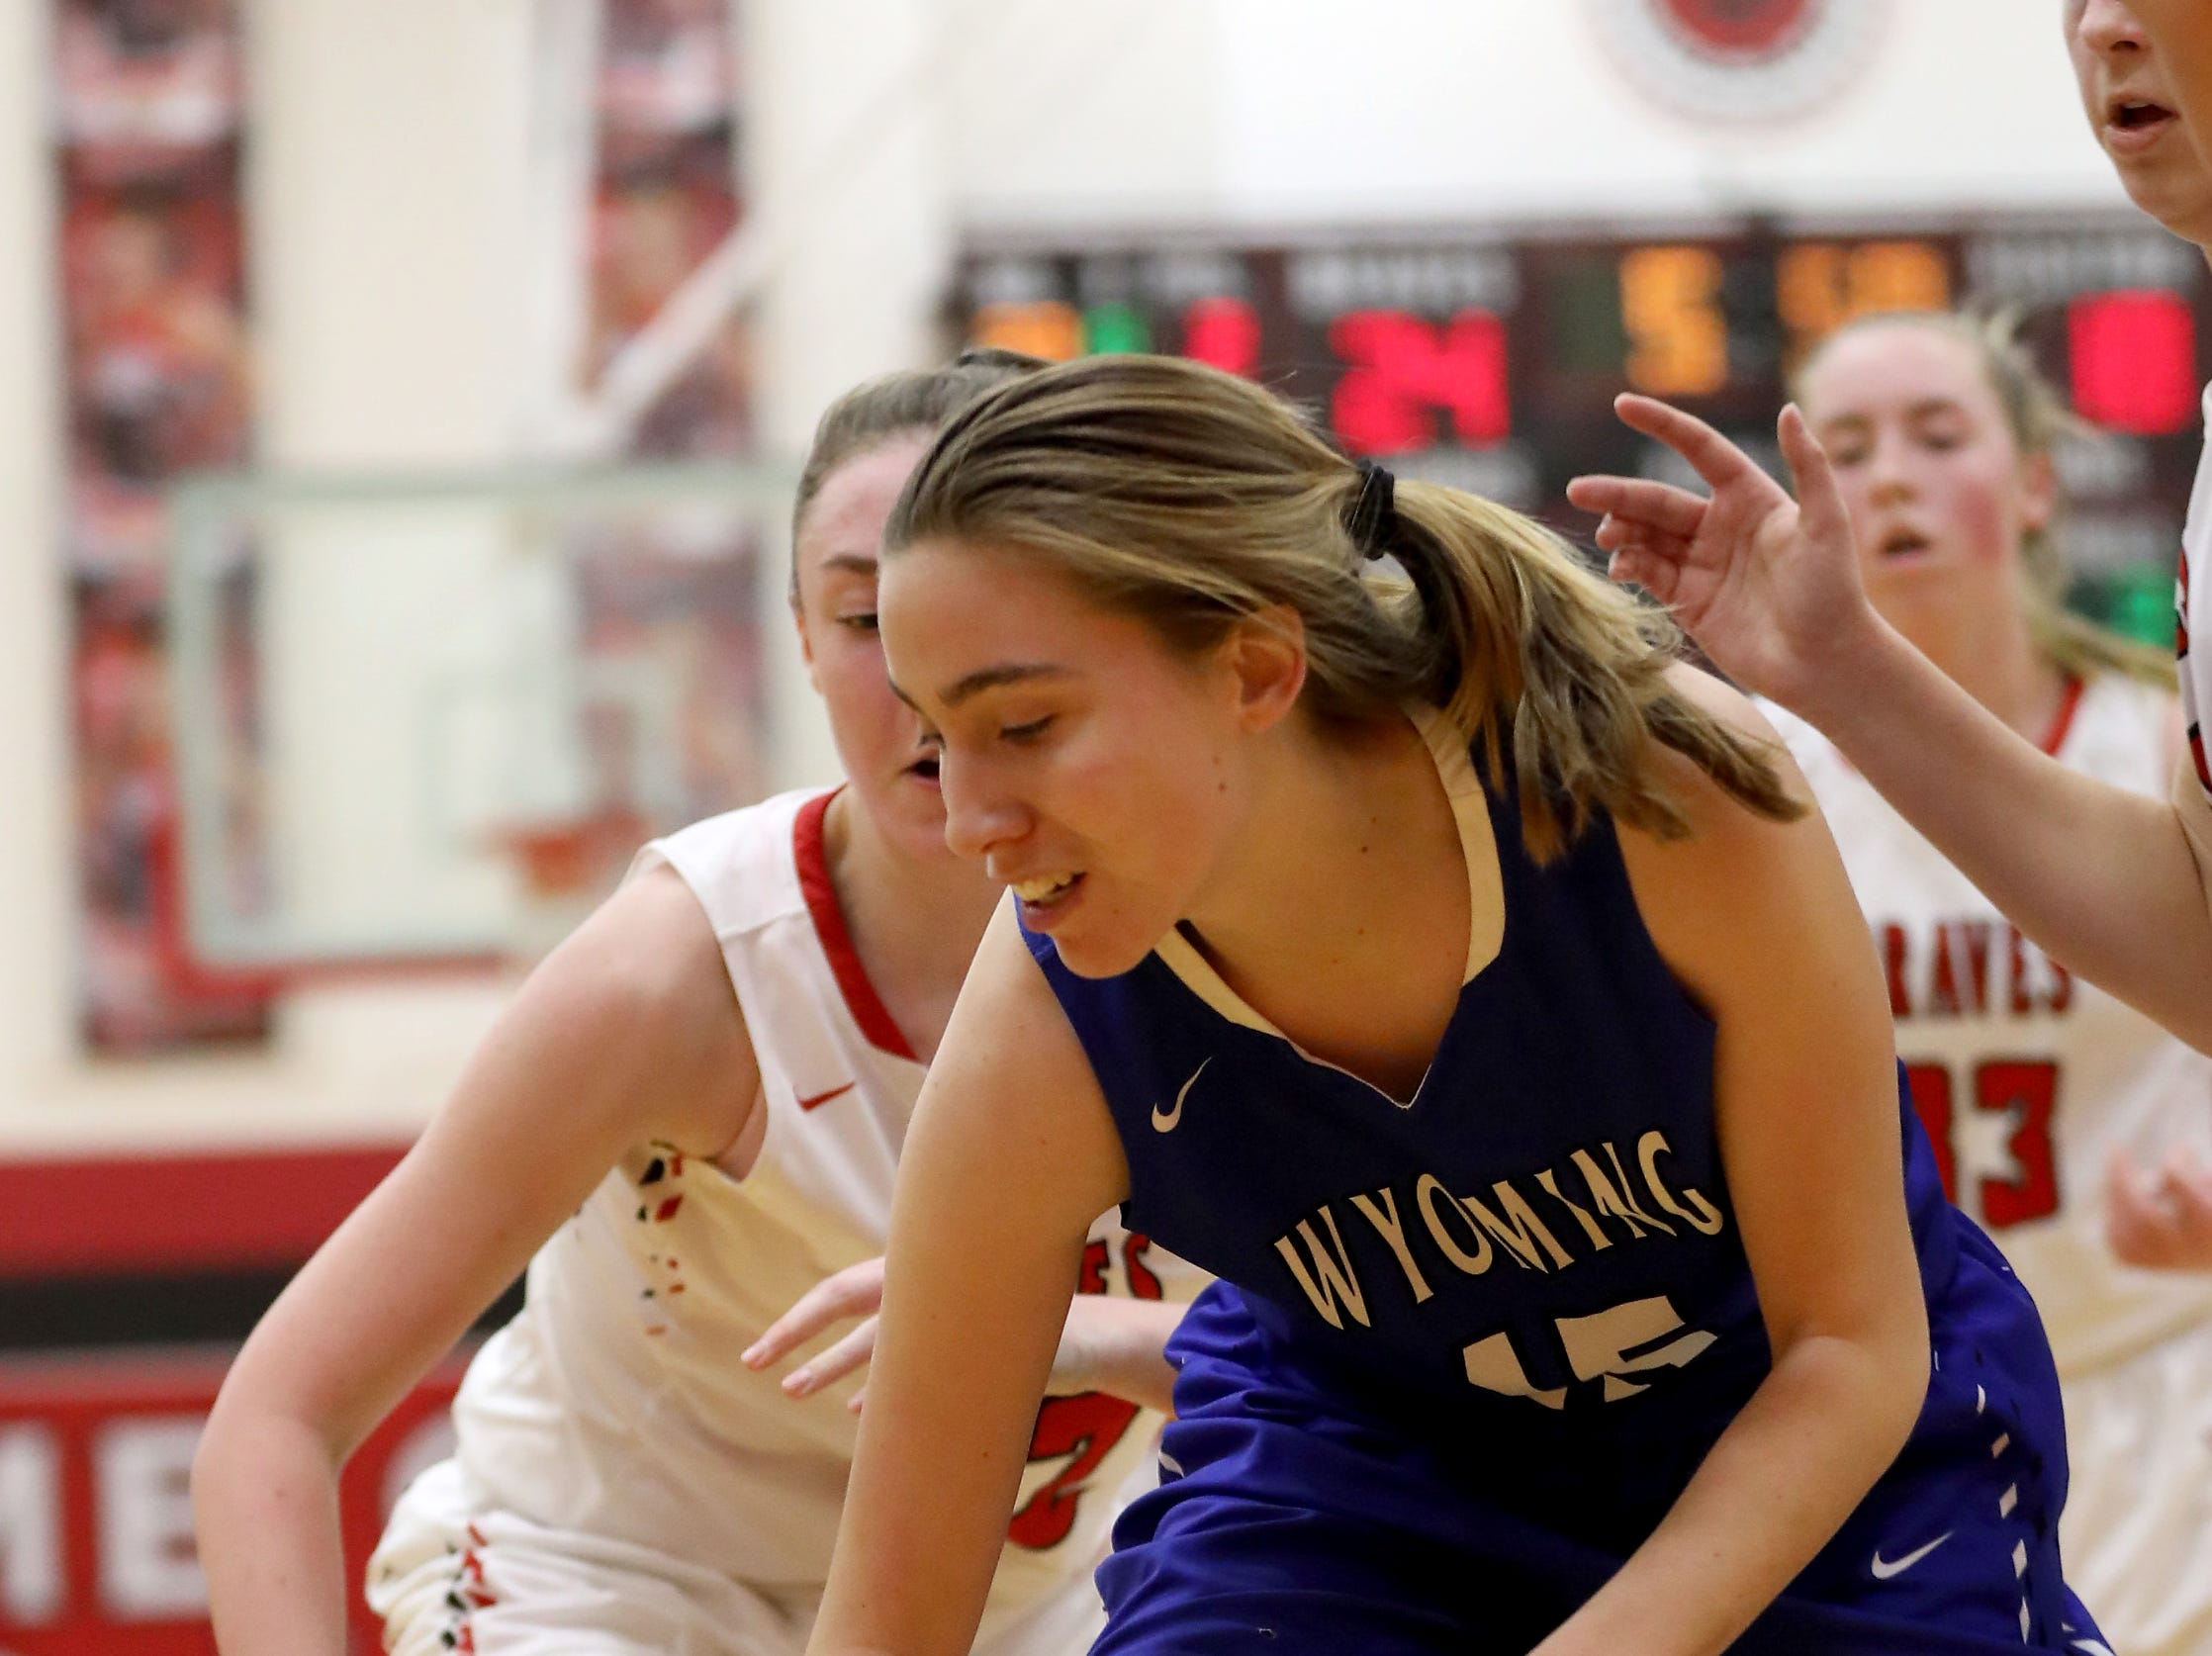 Wyoming guard Elly McCullumsmith (15) dribbles the ball  during their basketball game  against Indian Hill , Thursday, Jan.10, 2019.